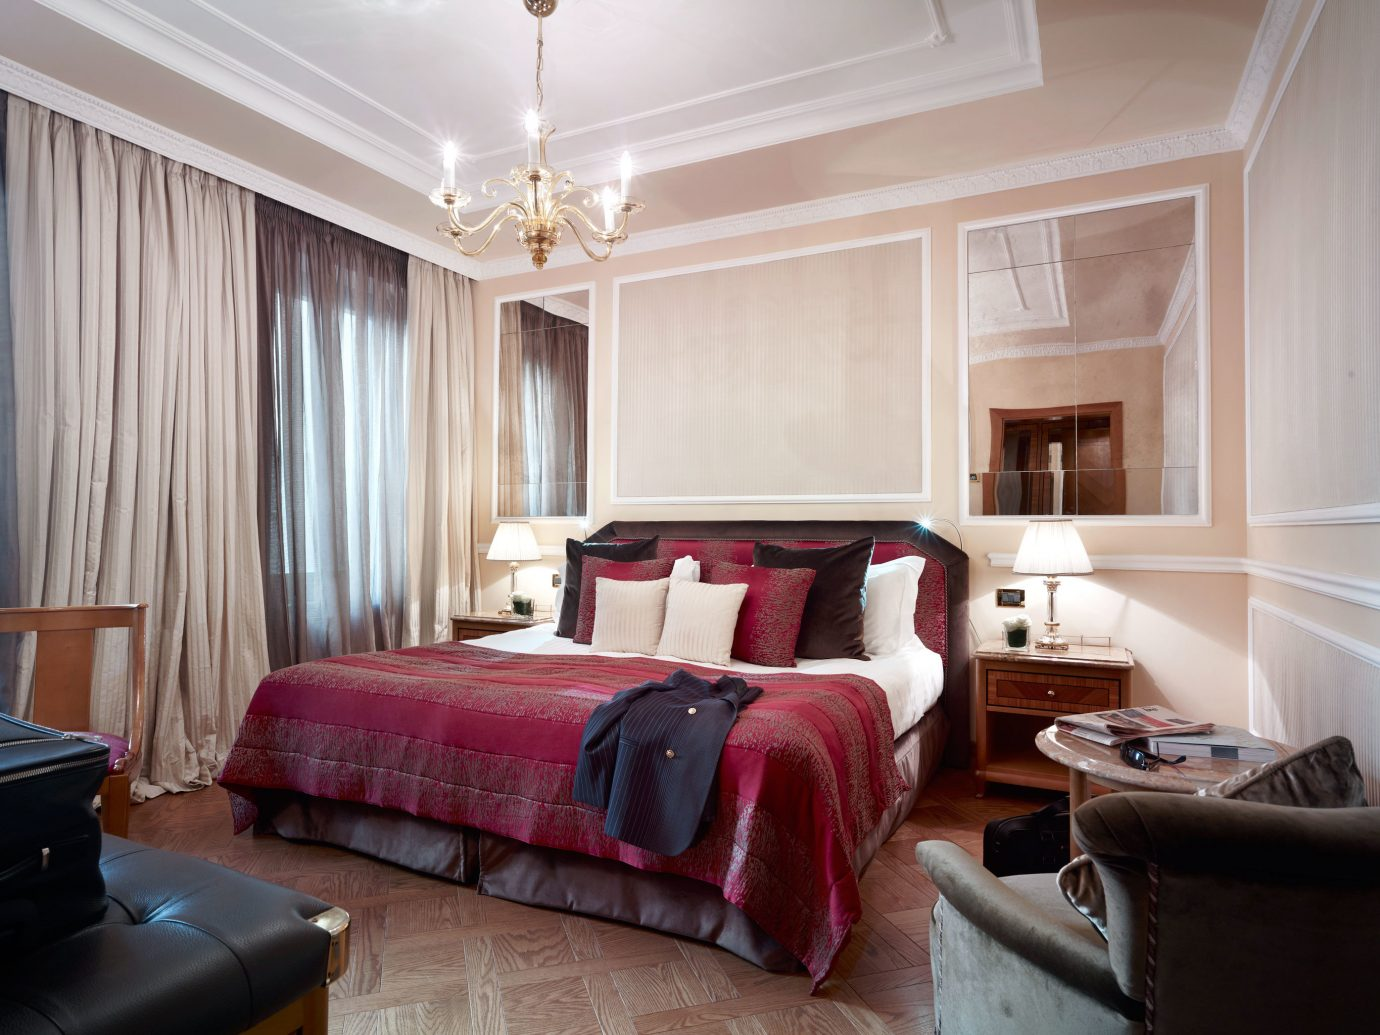 Bedroom Boutique City Classic Elegant Hotels indoor floor room property red Suite living room interior design estate home real estate cottage apartment furniture